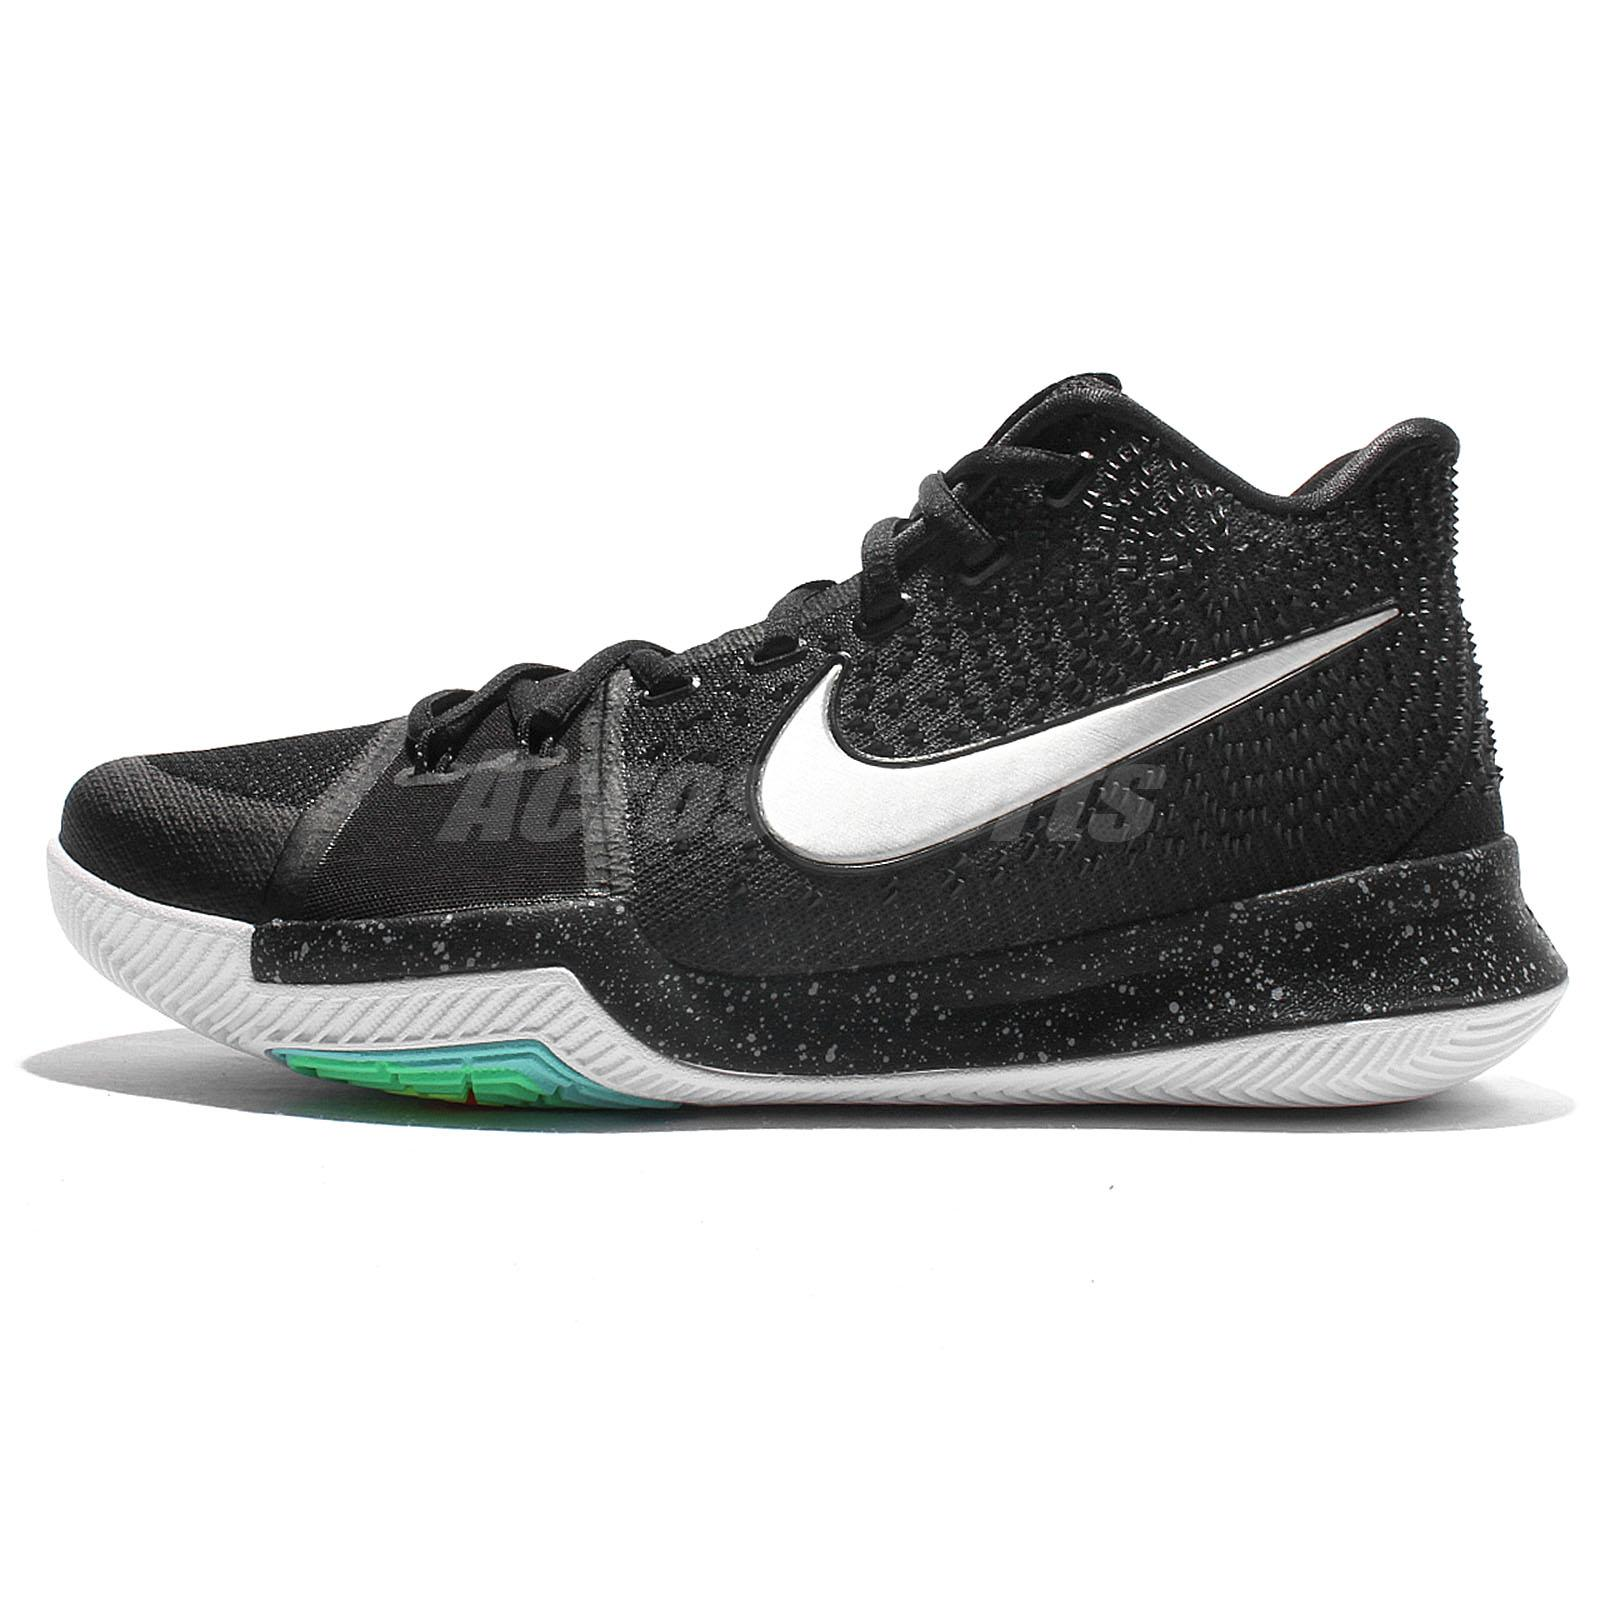 9916c77e8a4 ... dream multi color 73d69 59369  official store nike kyrie 3 black ice  action trainers clearance 504a7 097e5